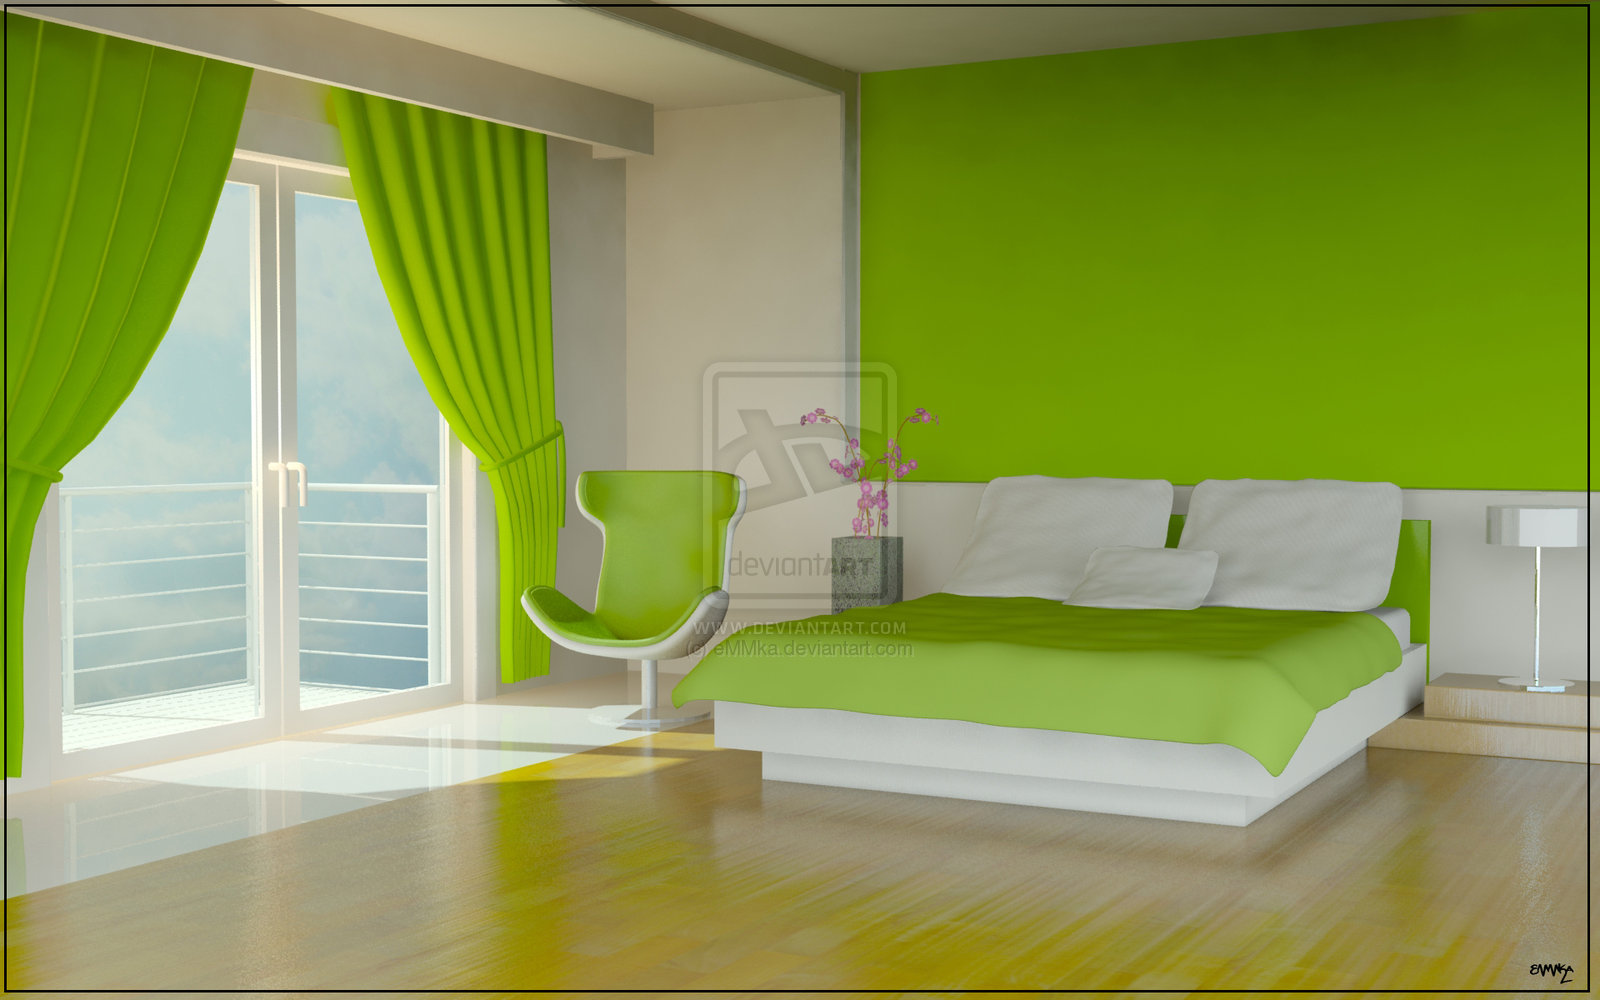 green bedroom martin lime green bedroom walls designs lime green walls green painted rooms